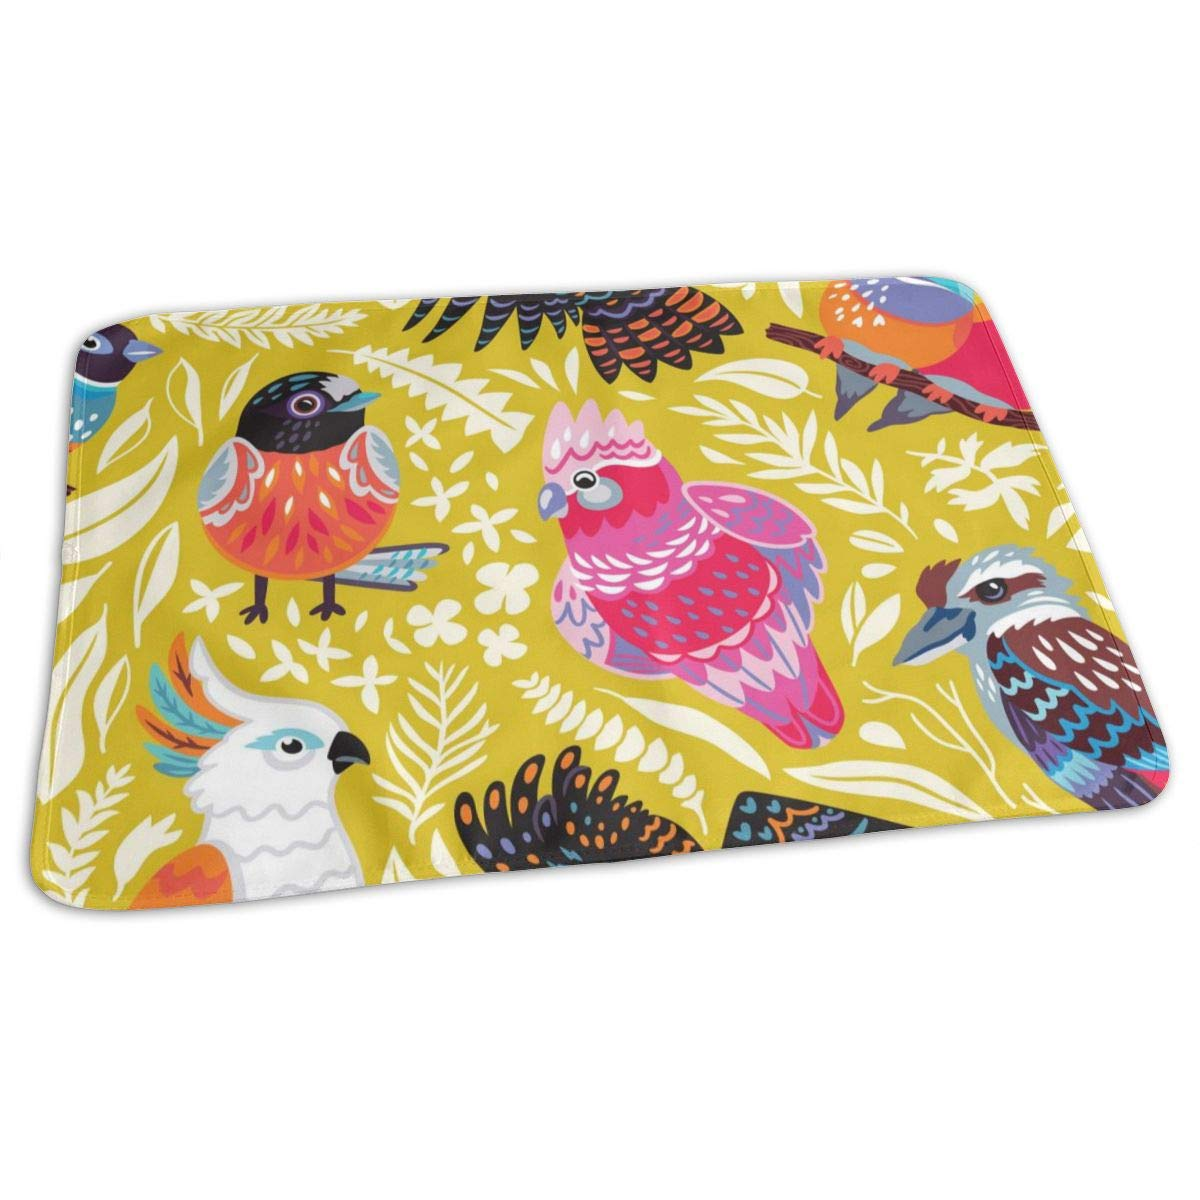 Osvbs Lovely Baby Reusable Waterproof Portable Exotic Pattern with Australian Birds and Tropical Leaves Changing Pad Home Travel 27.5''x19.7'' by Osvbs